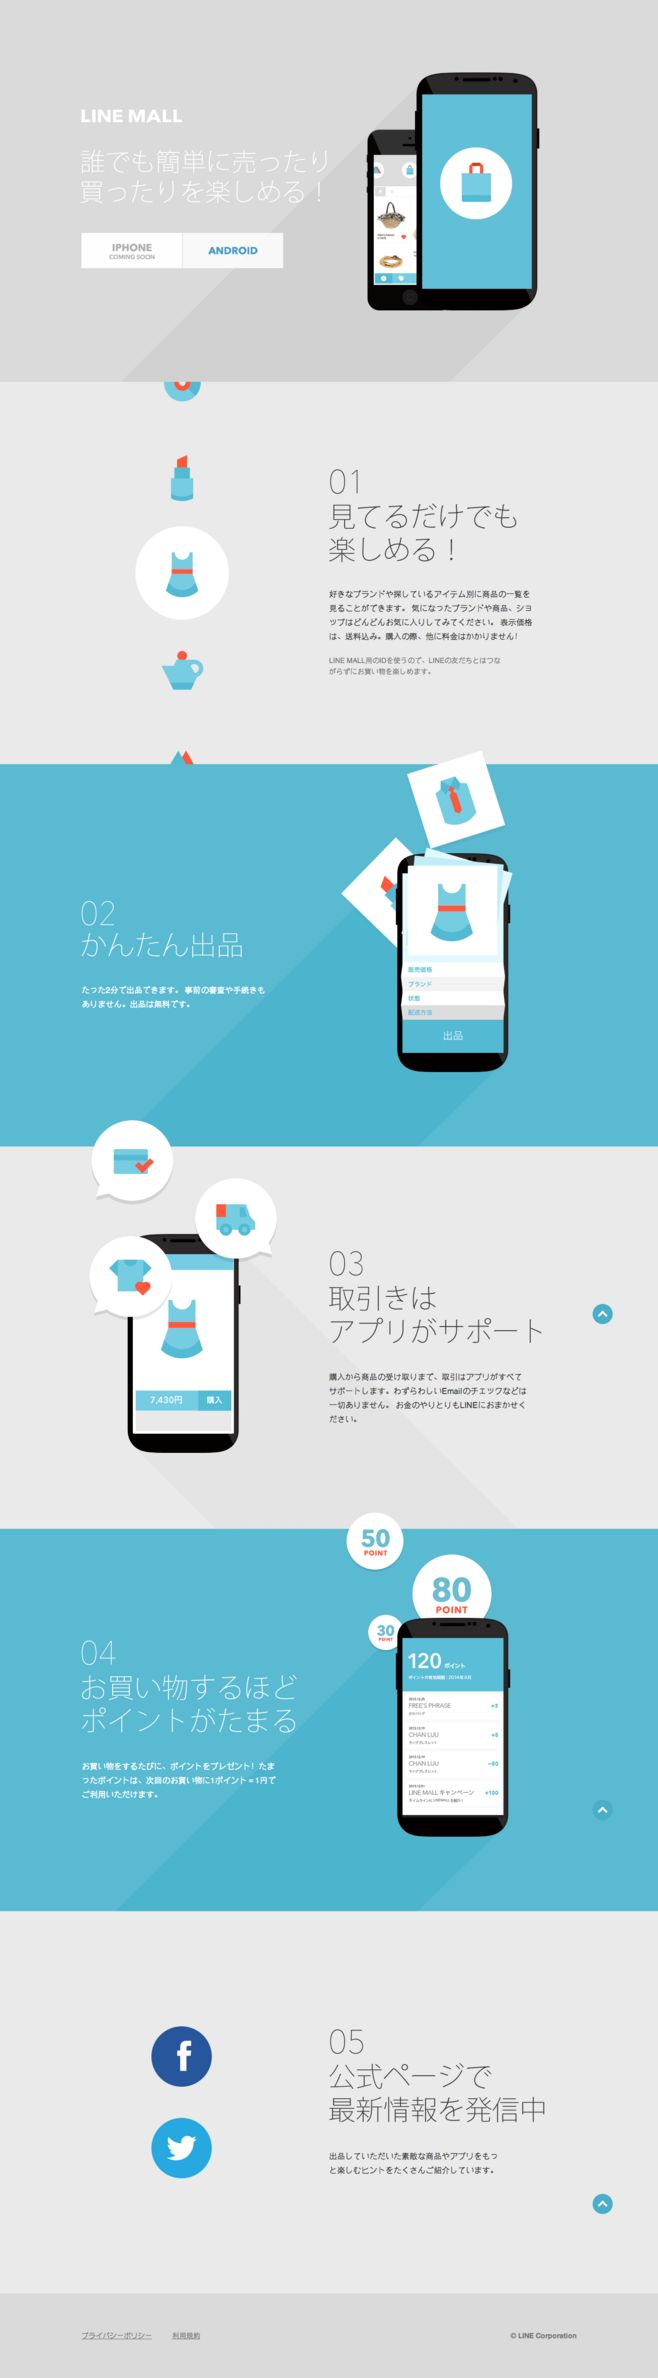 Unique Web Design, Line Mall #WebDesign #Design…